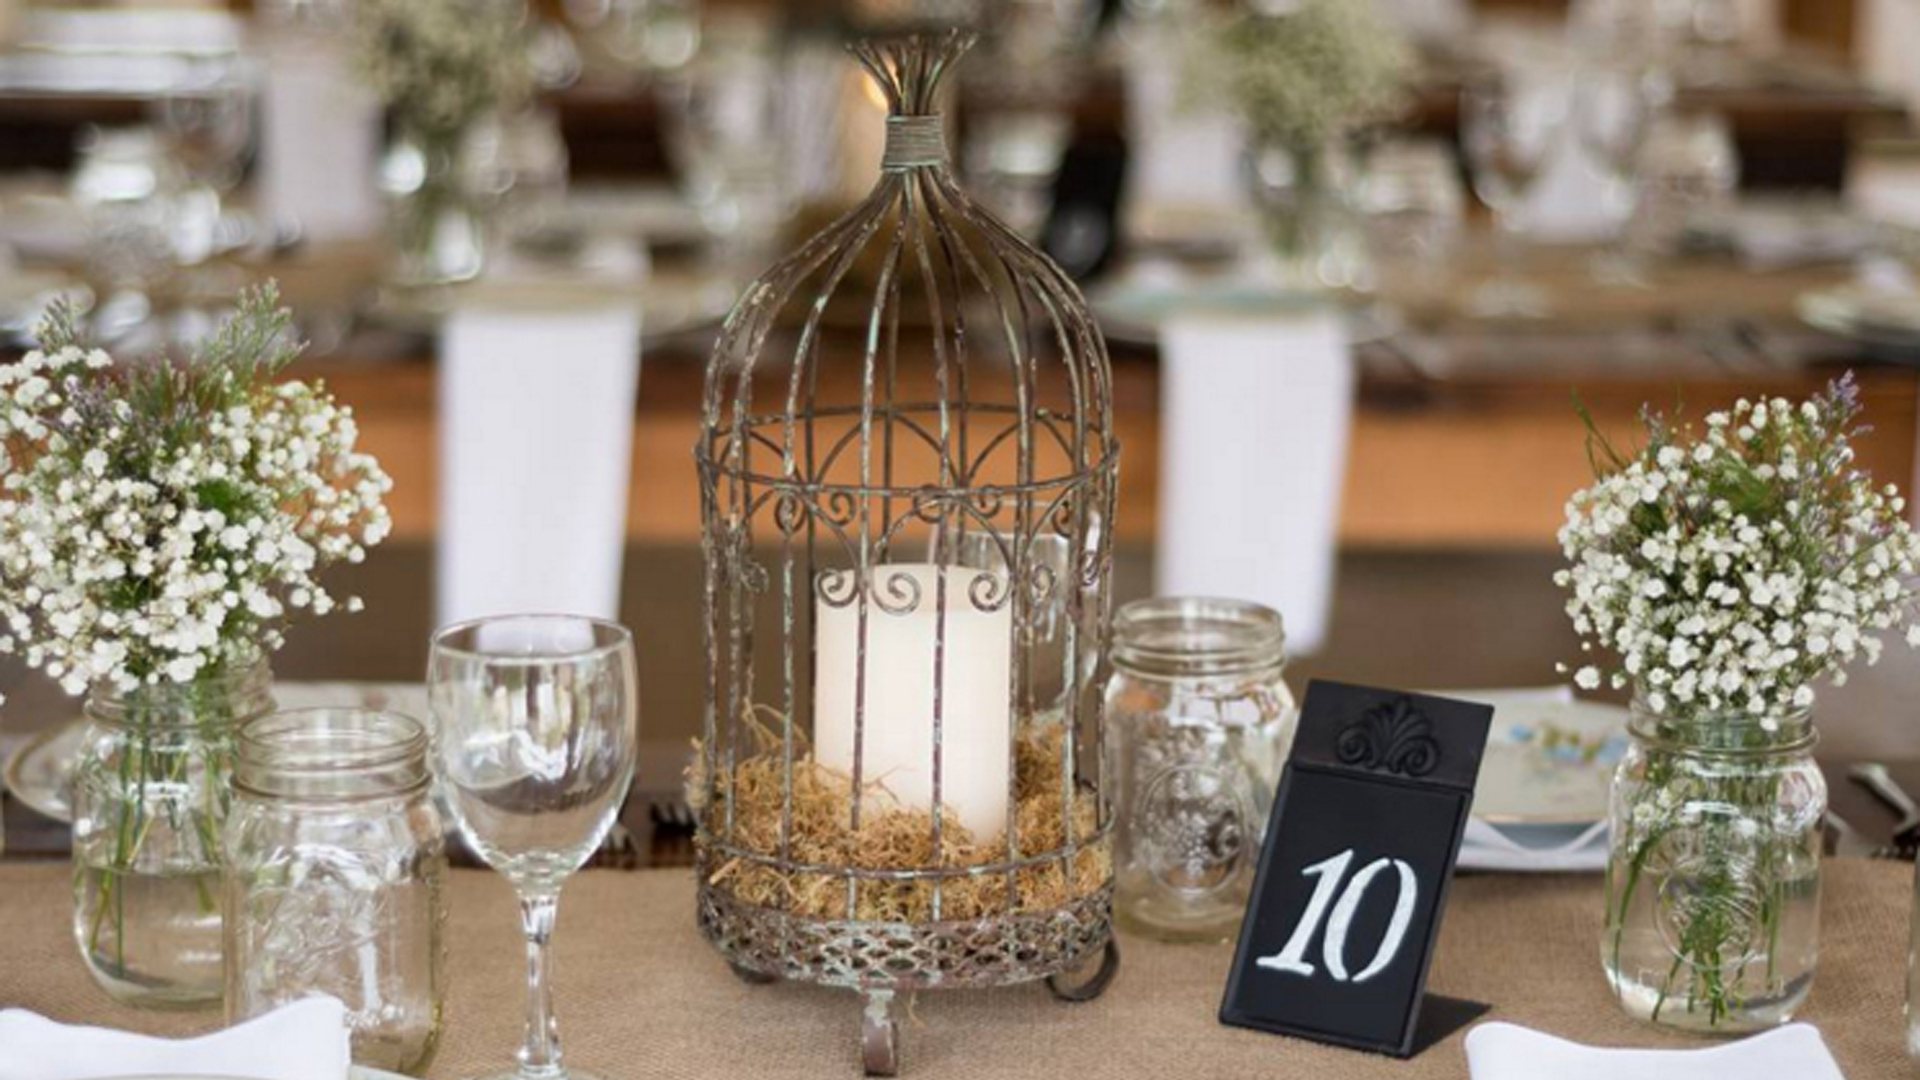 17 ways to add vintage flair to your wedding reception – SheKnows